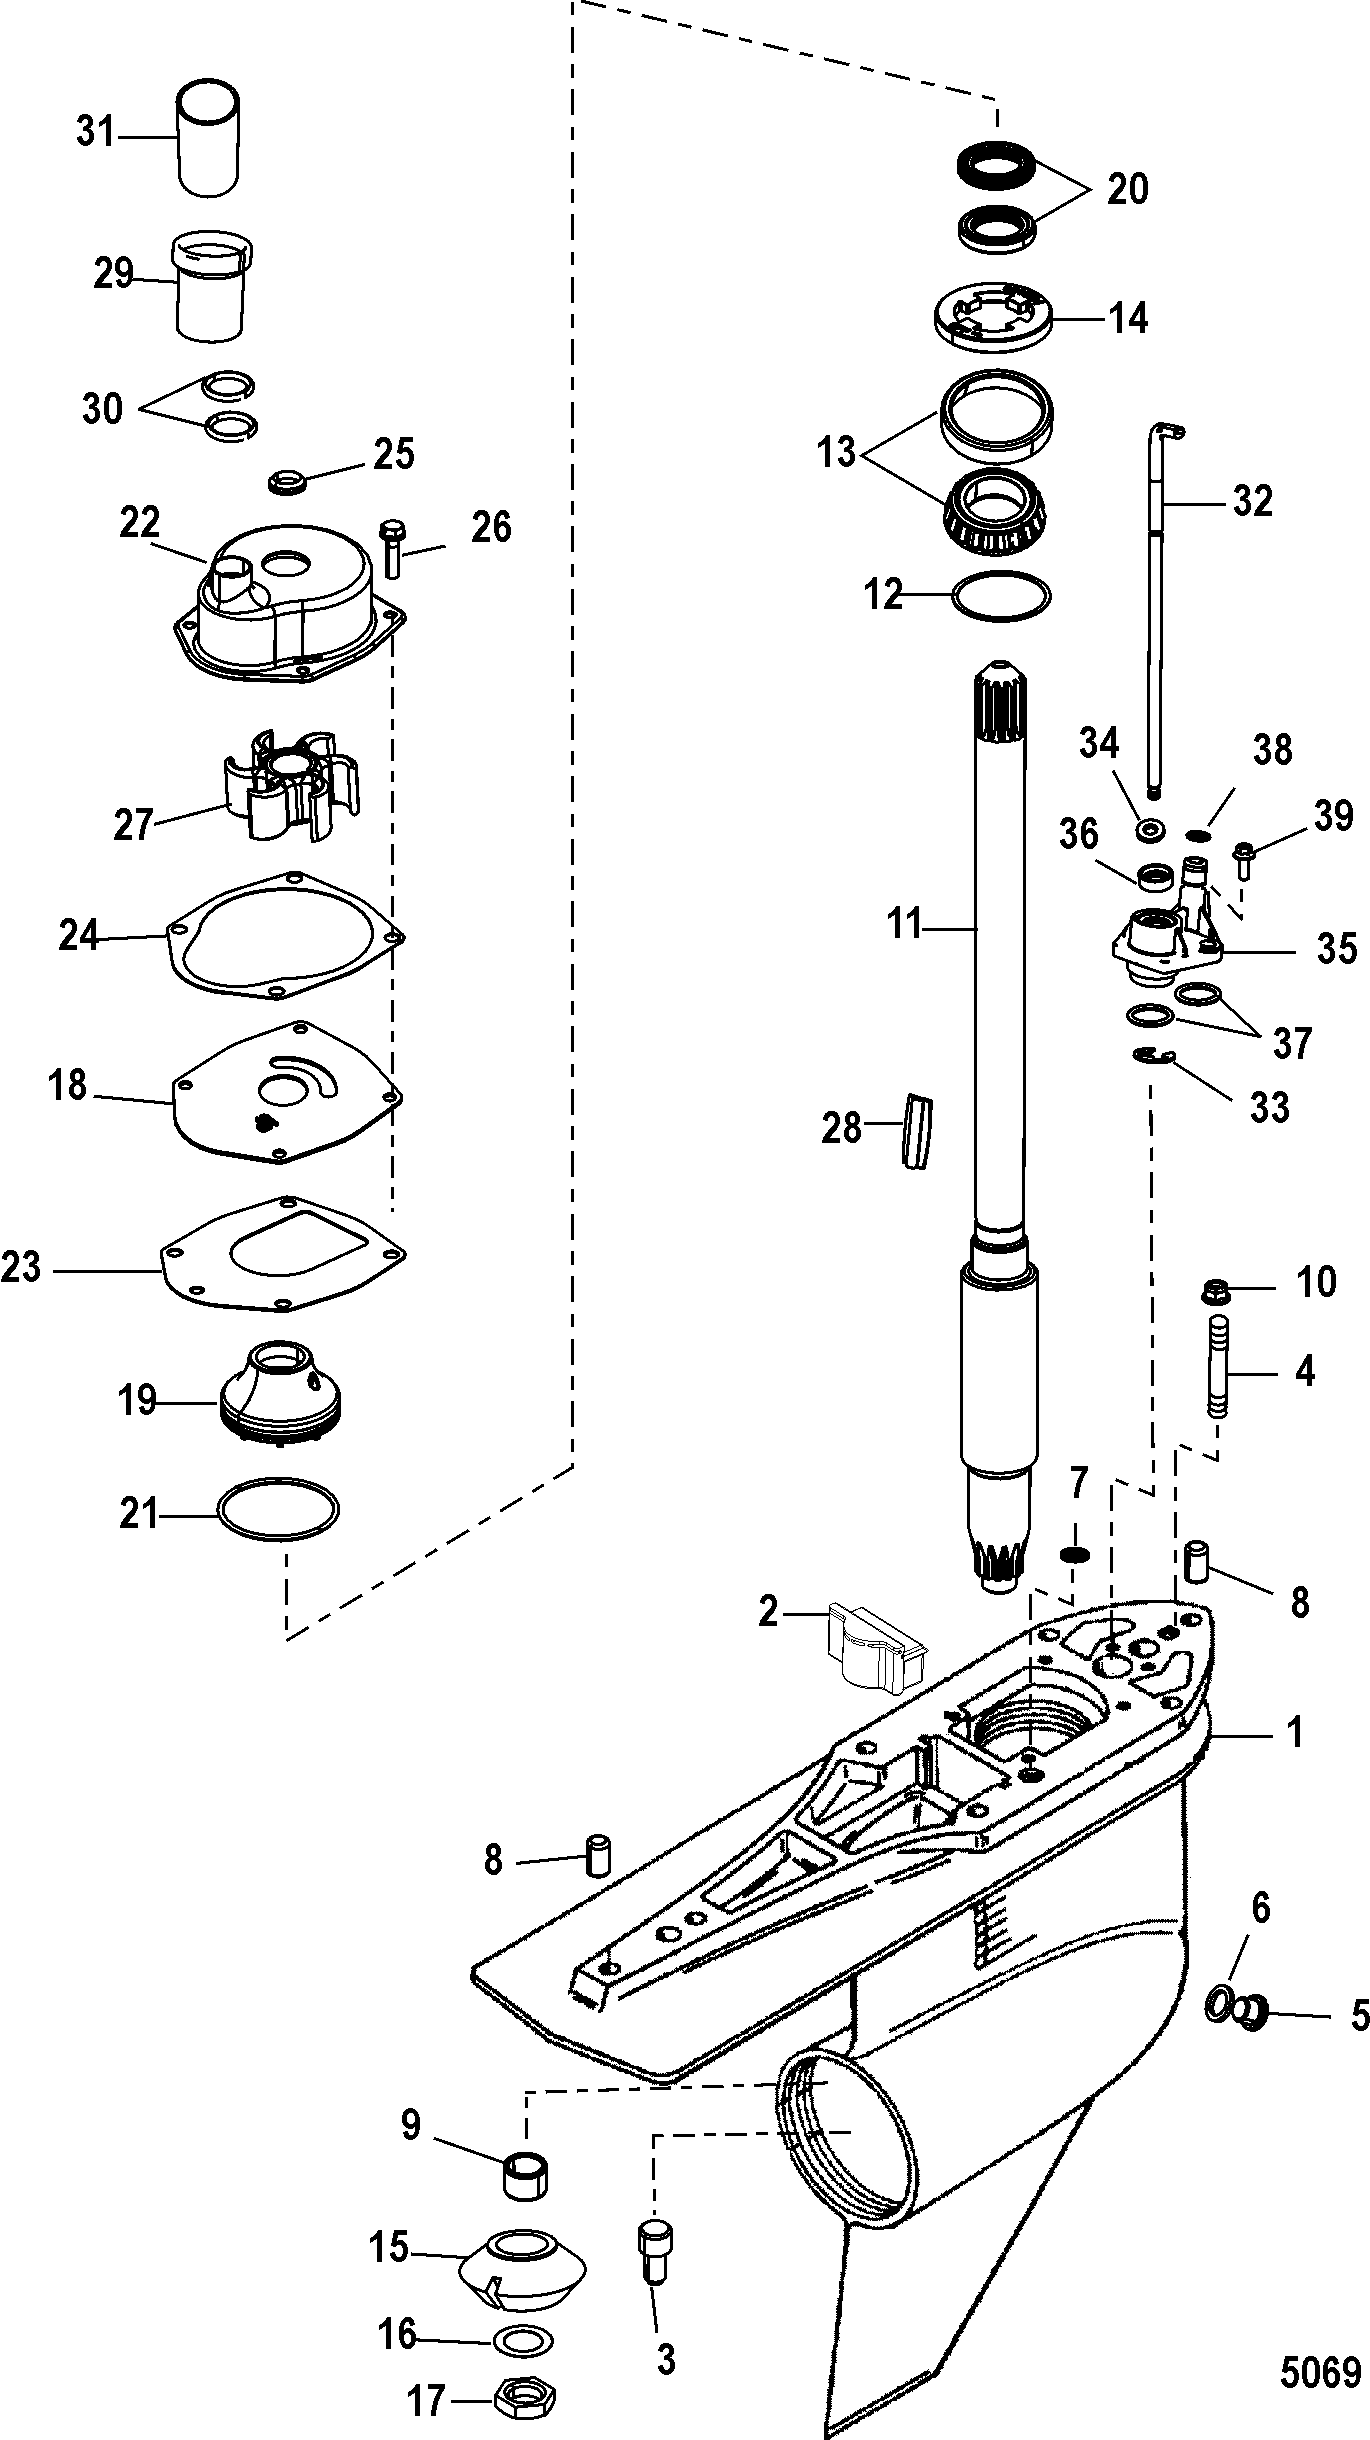 GEAR HOUSING DRIVESHAFT STANDARD ROTATION FOR MERCRUISER